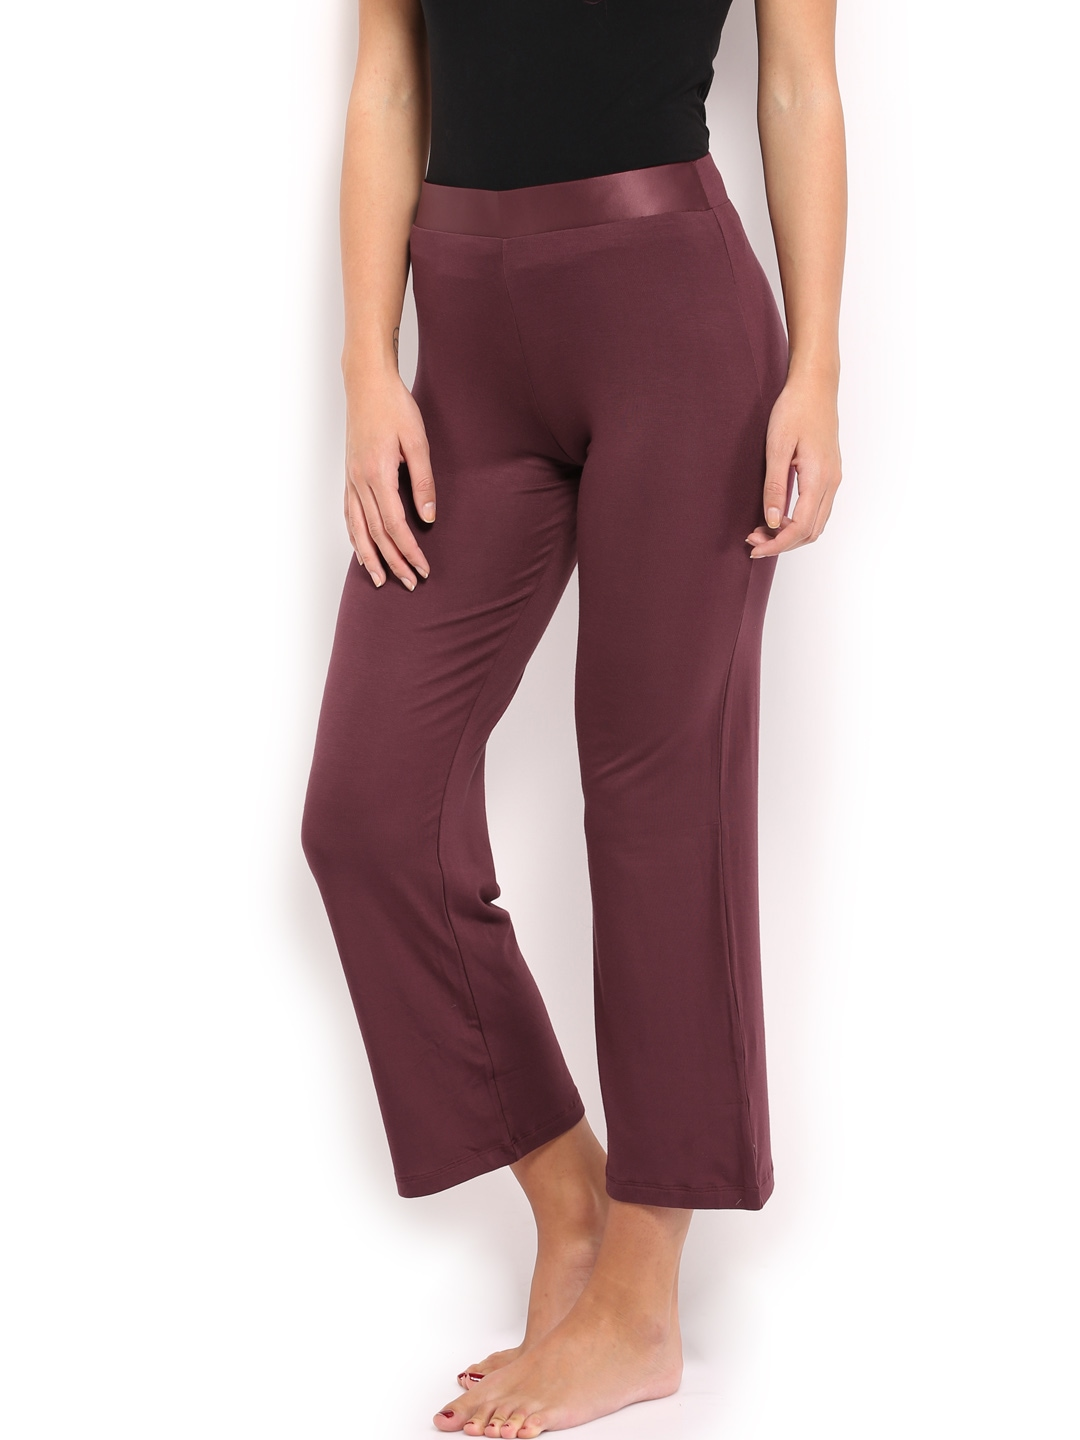 Popular Volcom Species Pant Burgundy 2015 Womens Snowboard Outerwear